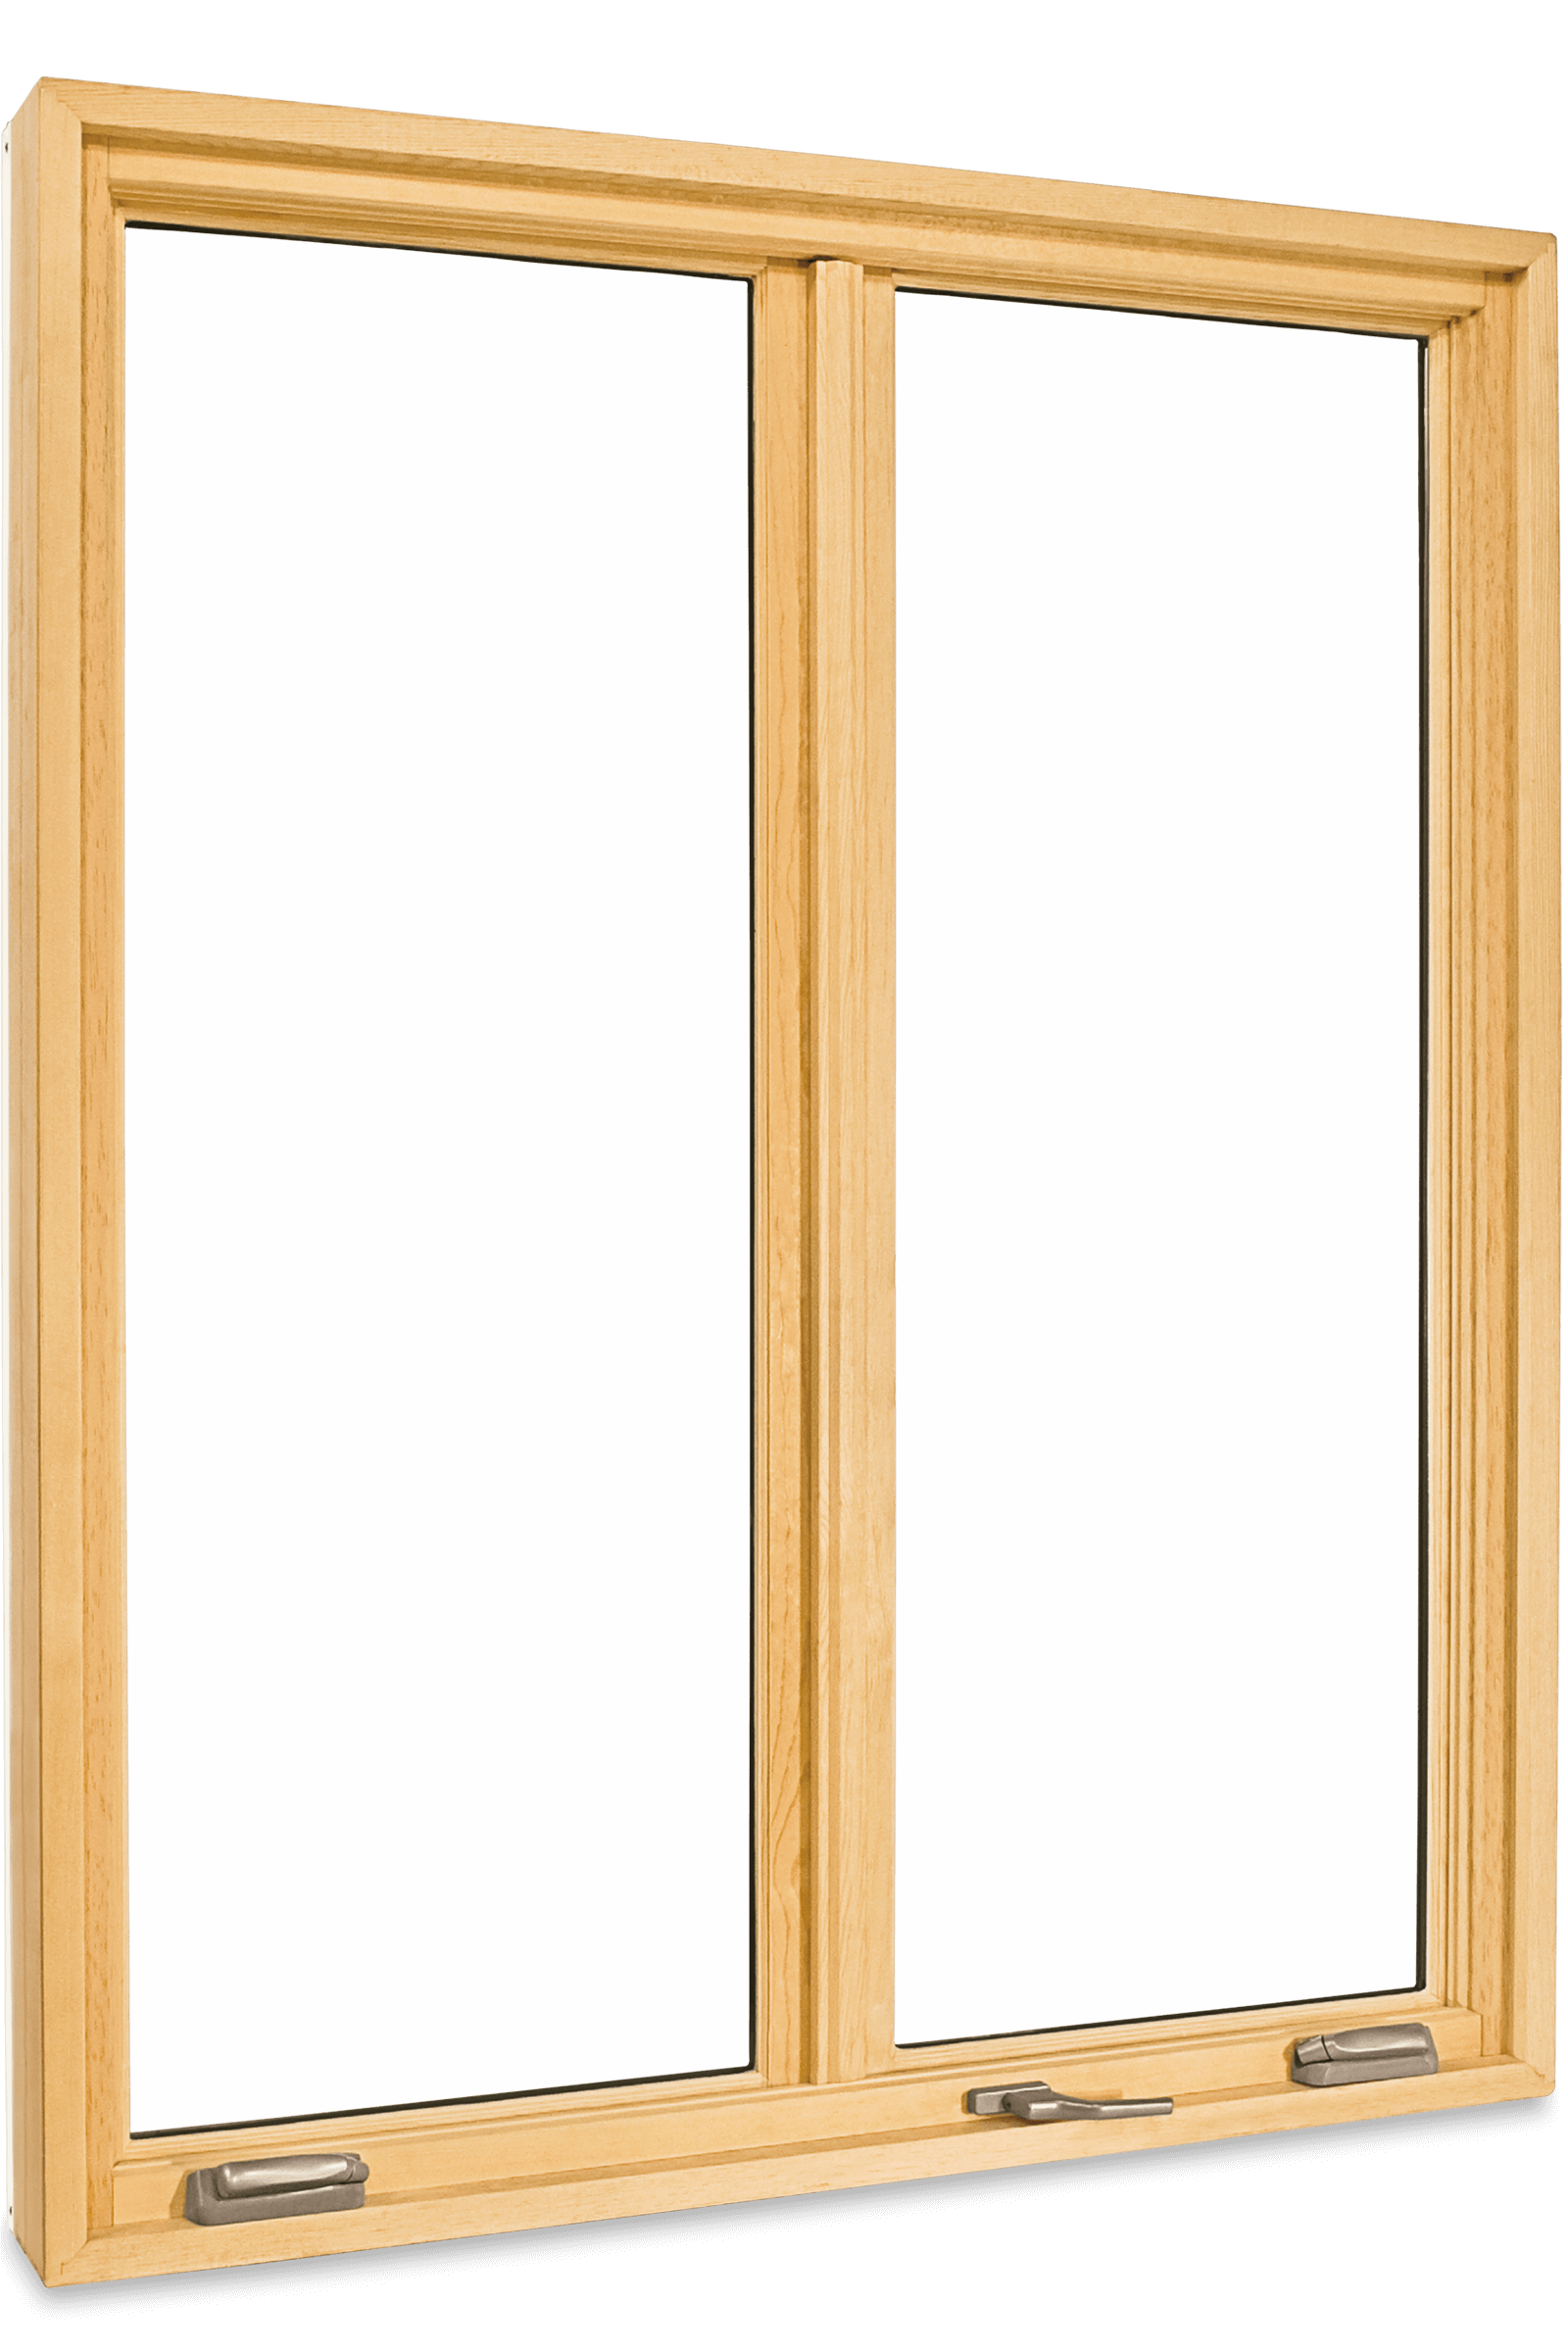 French Casement Windows Roll Out Crank Out Windows Marvin